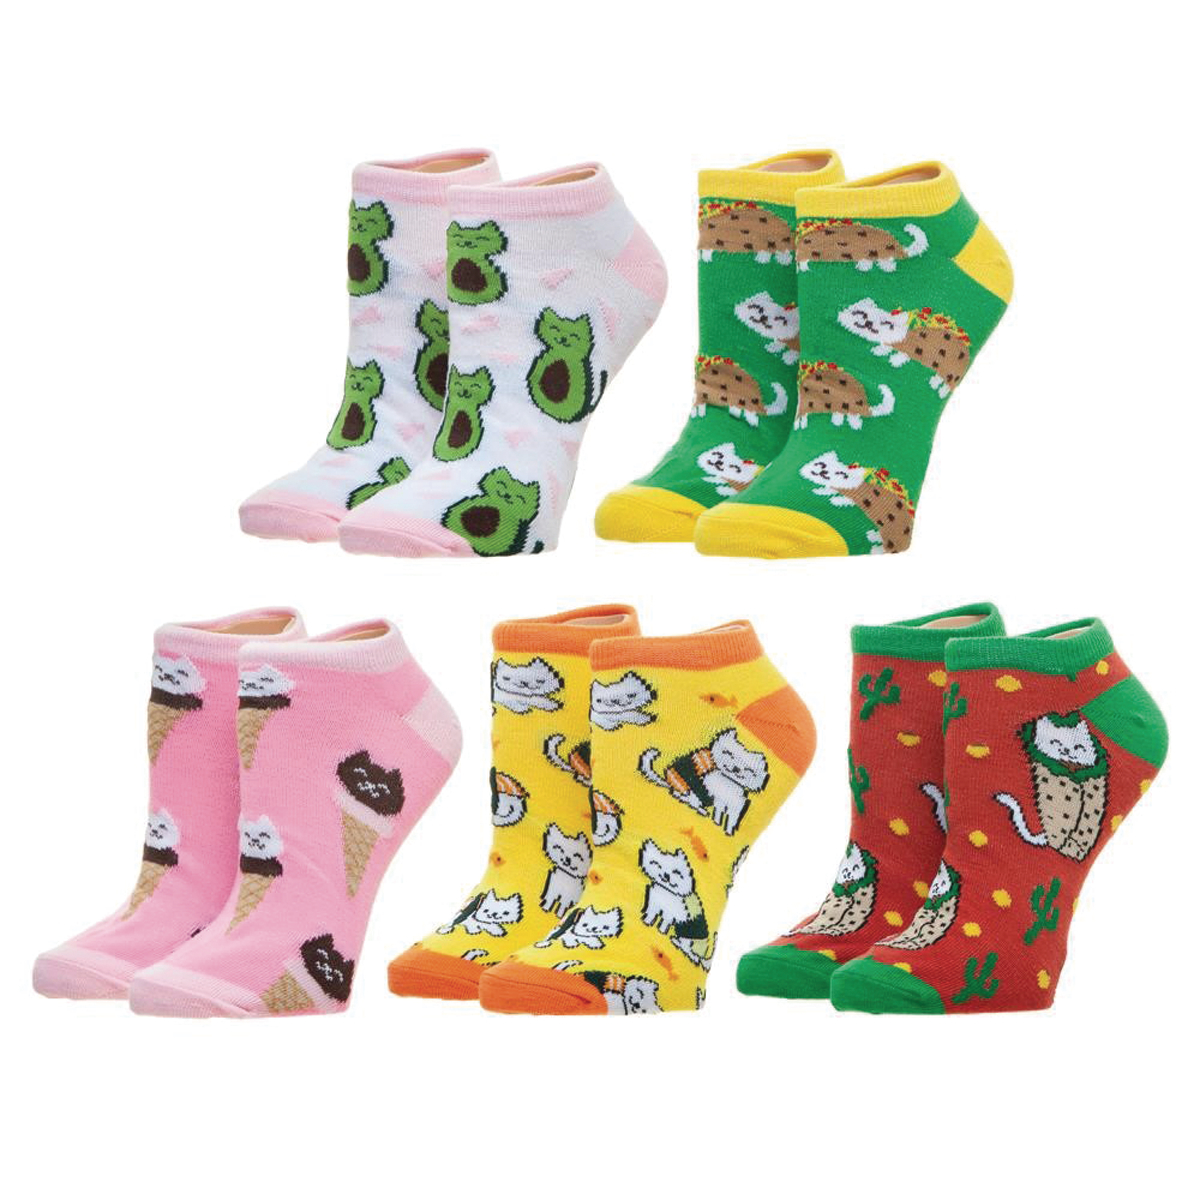 CAT FOOD 5PK ANKLE SOCKS